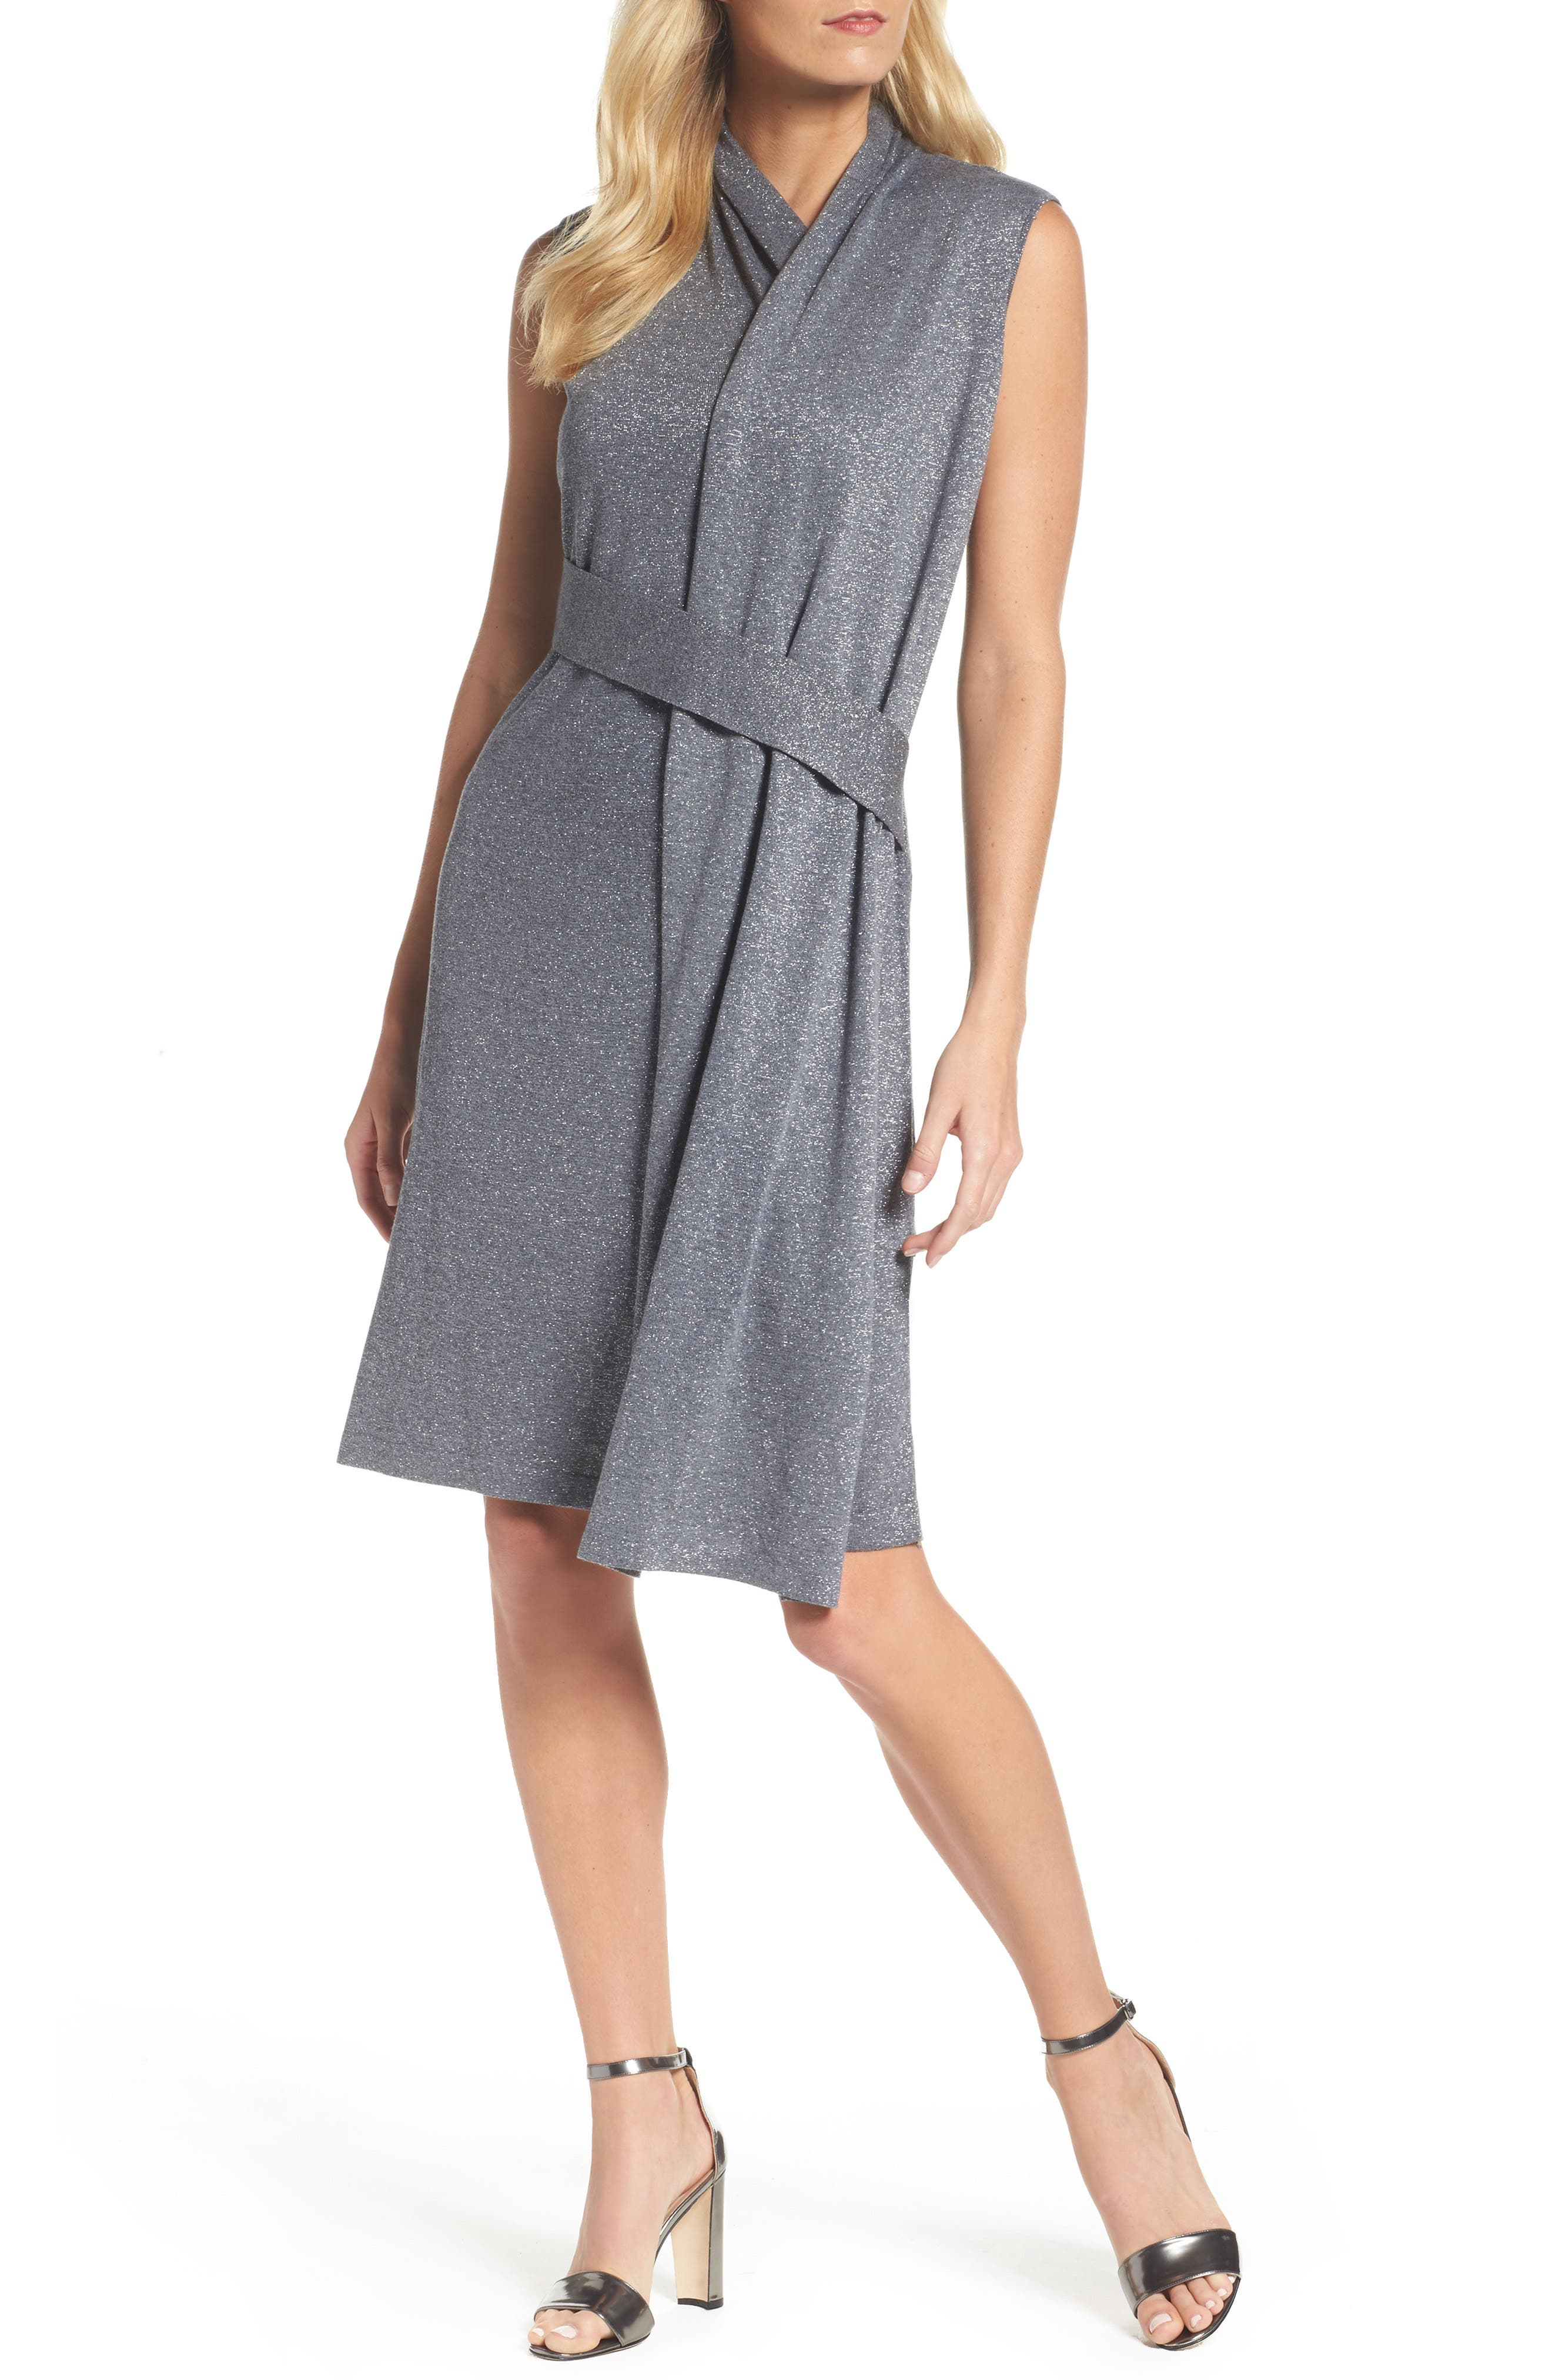 Alternate Image 1 Selected - NIC+ZOE Draped Faux Wrap Dress